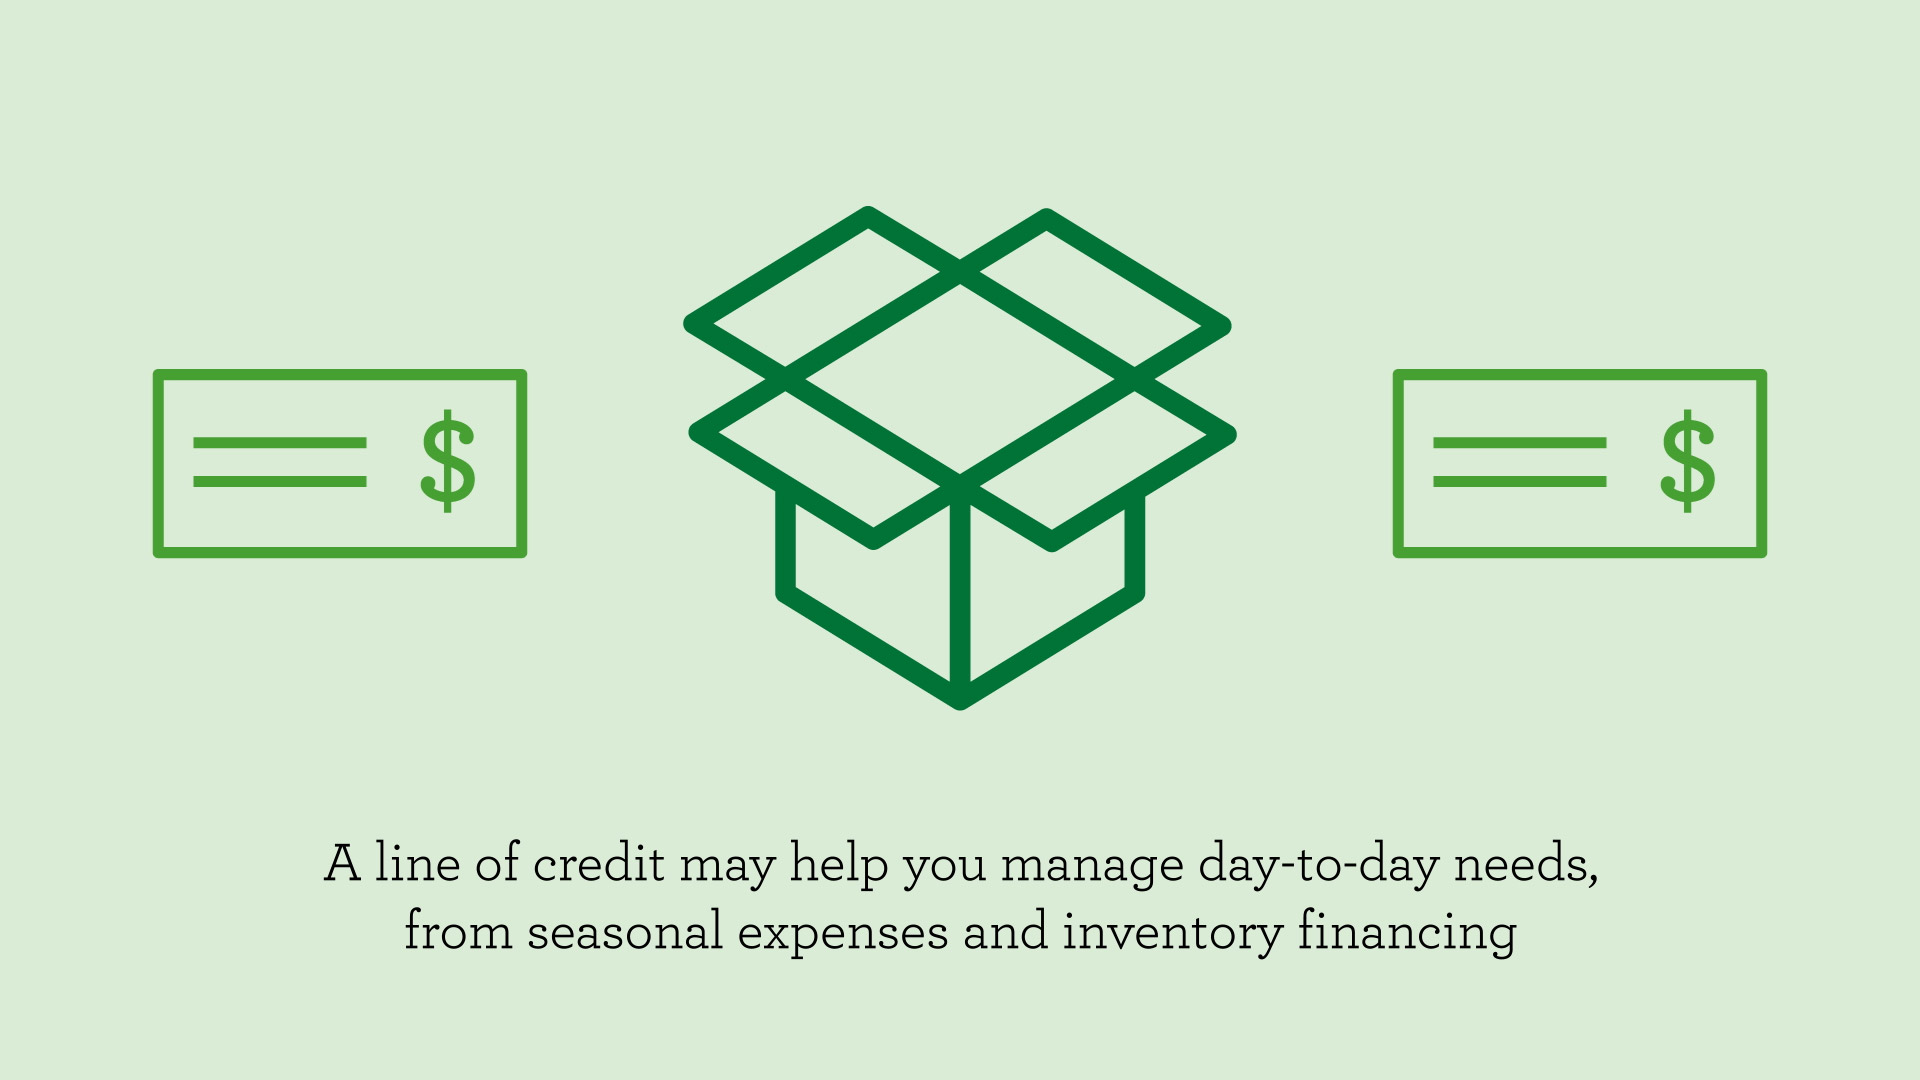 Choosing the right credit option for your business: Line of credit